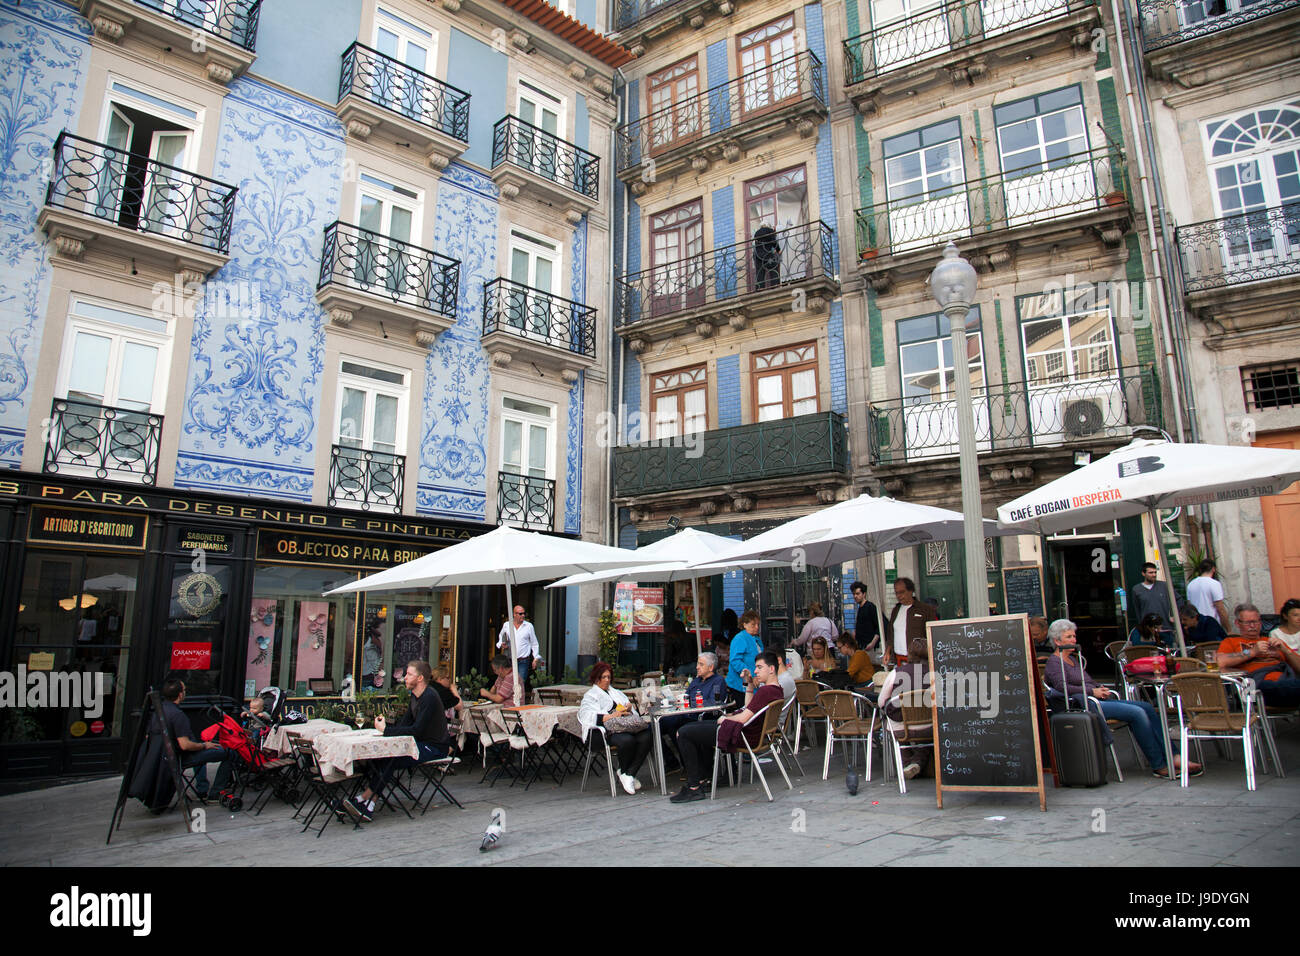 Largo São Domingos with Cafes and Restaurants in Porto - Portugal - Stock Image